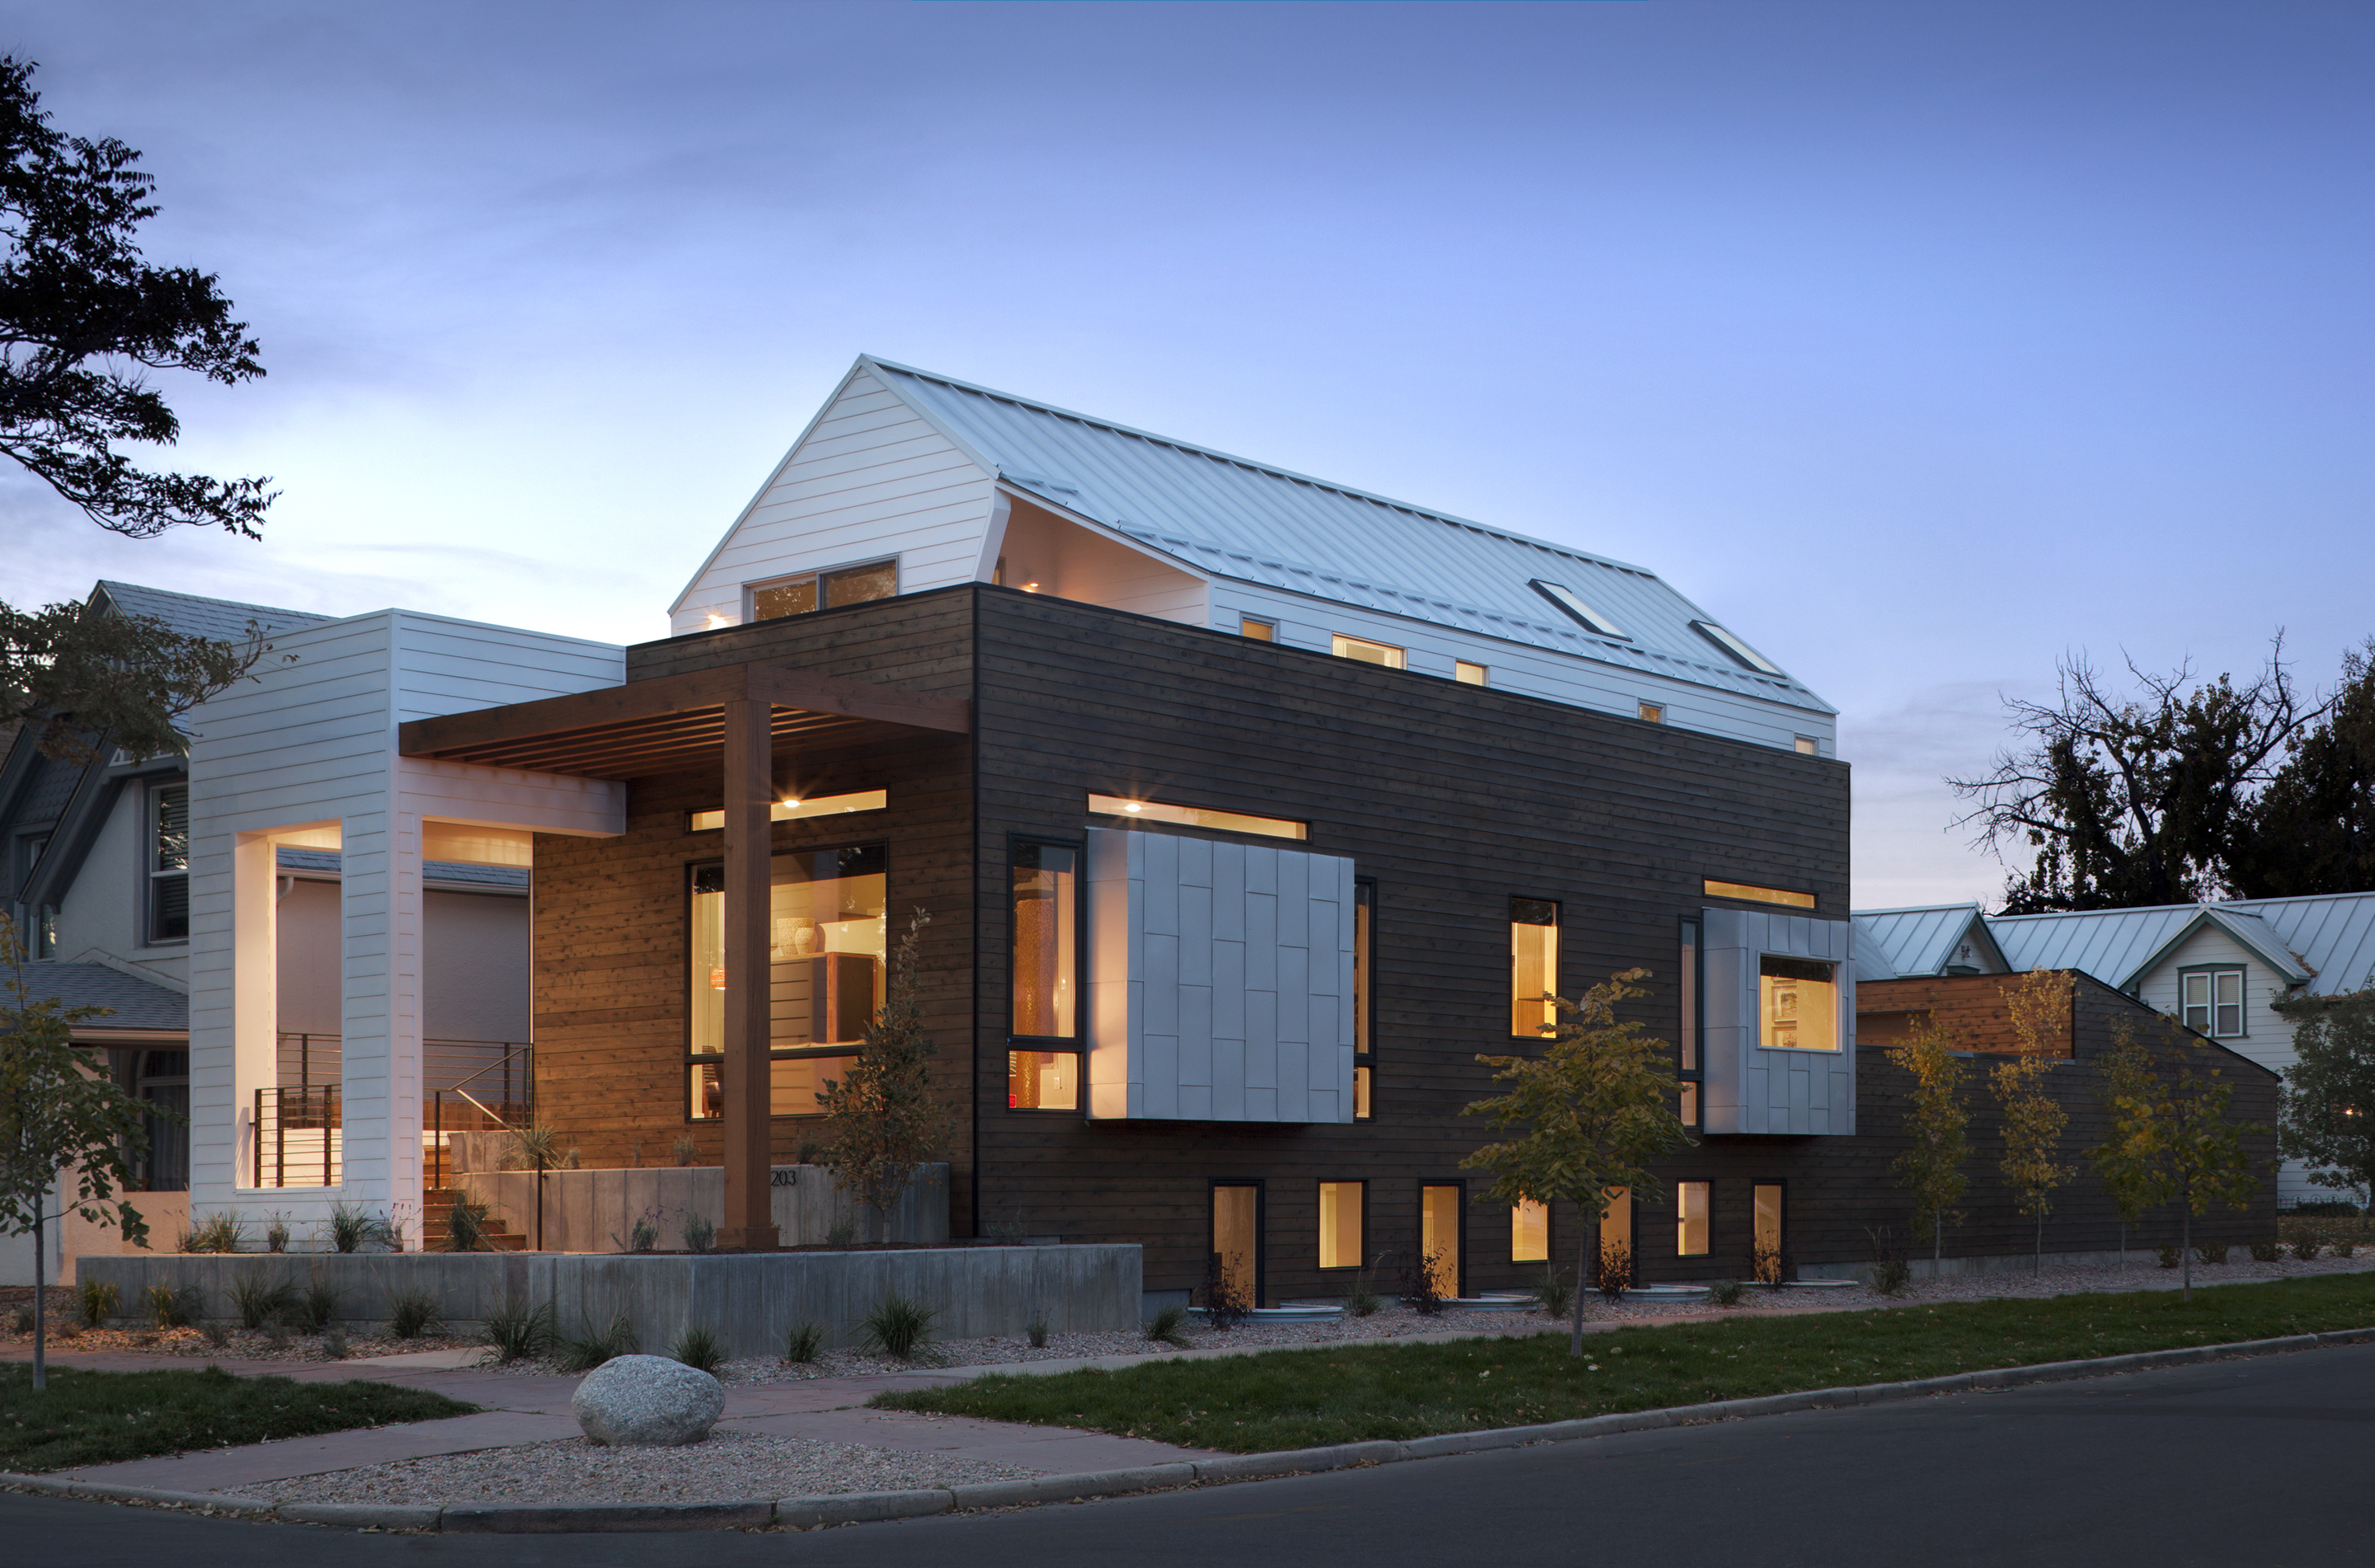 Denver home with setback top floor to create roof deck space.